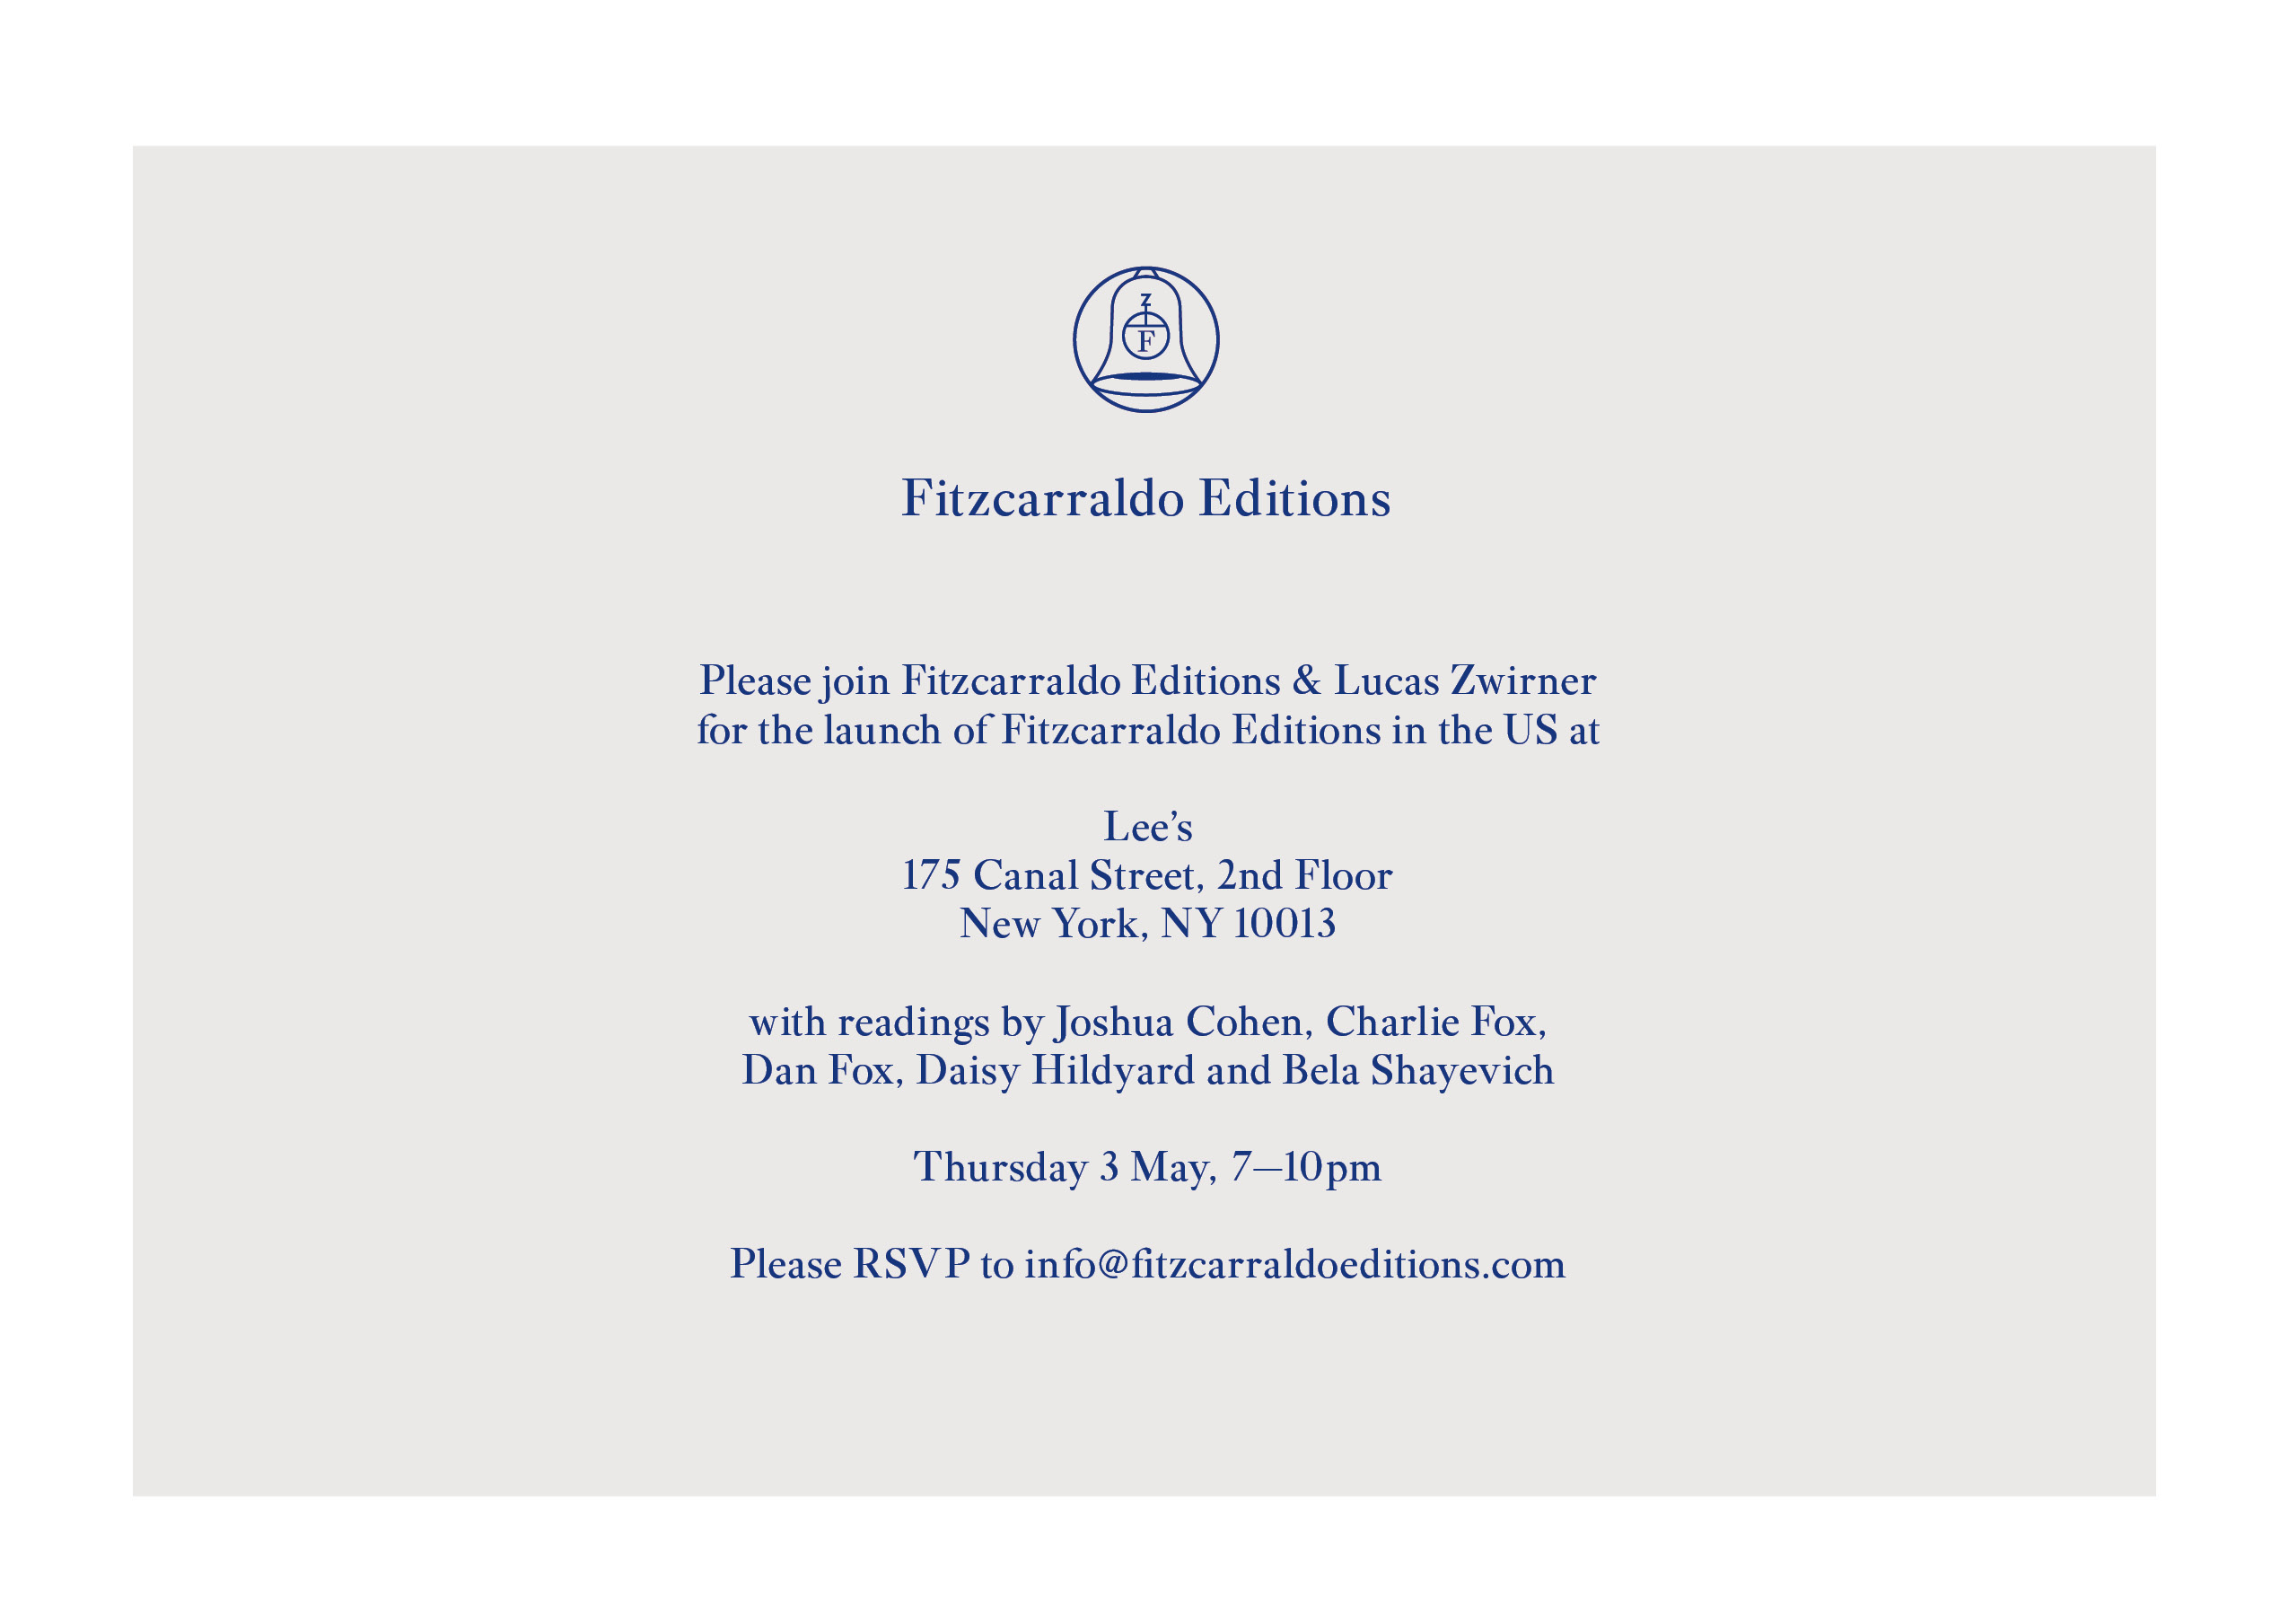 Fitzcarraldo Editions US launch party